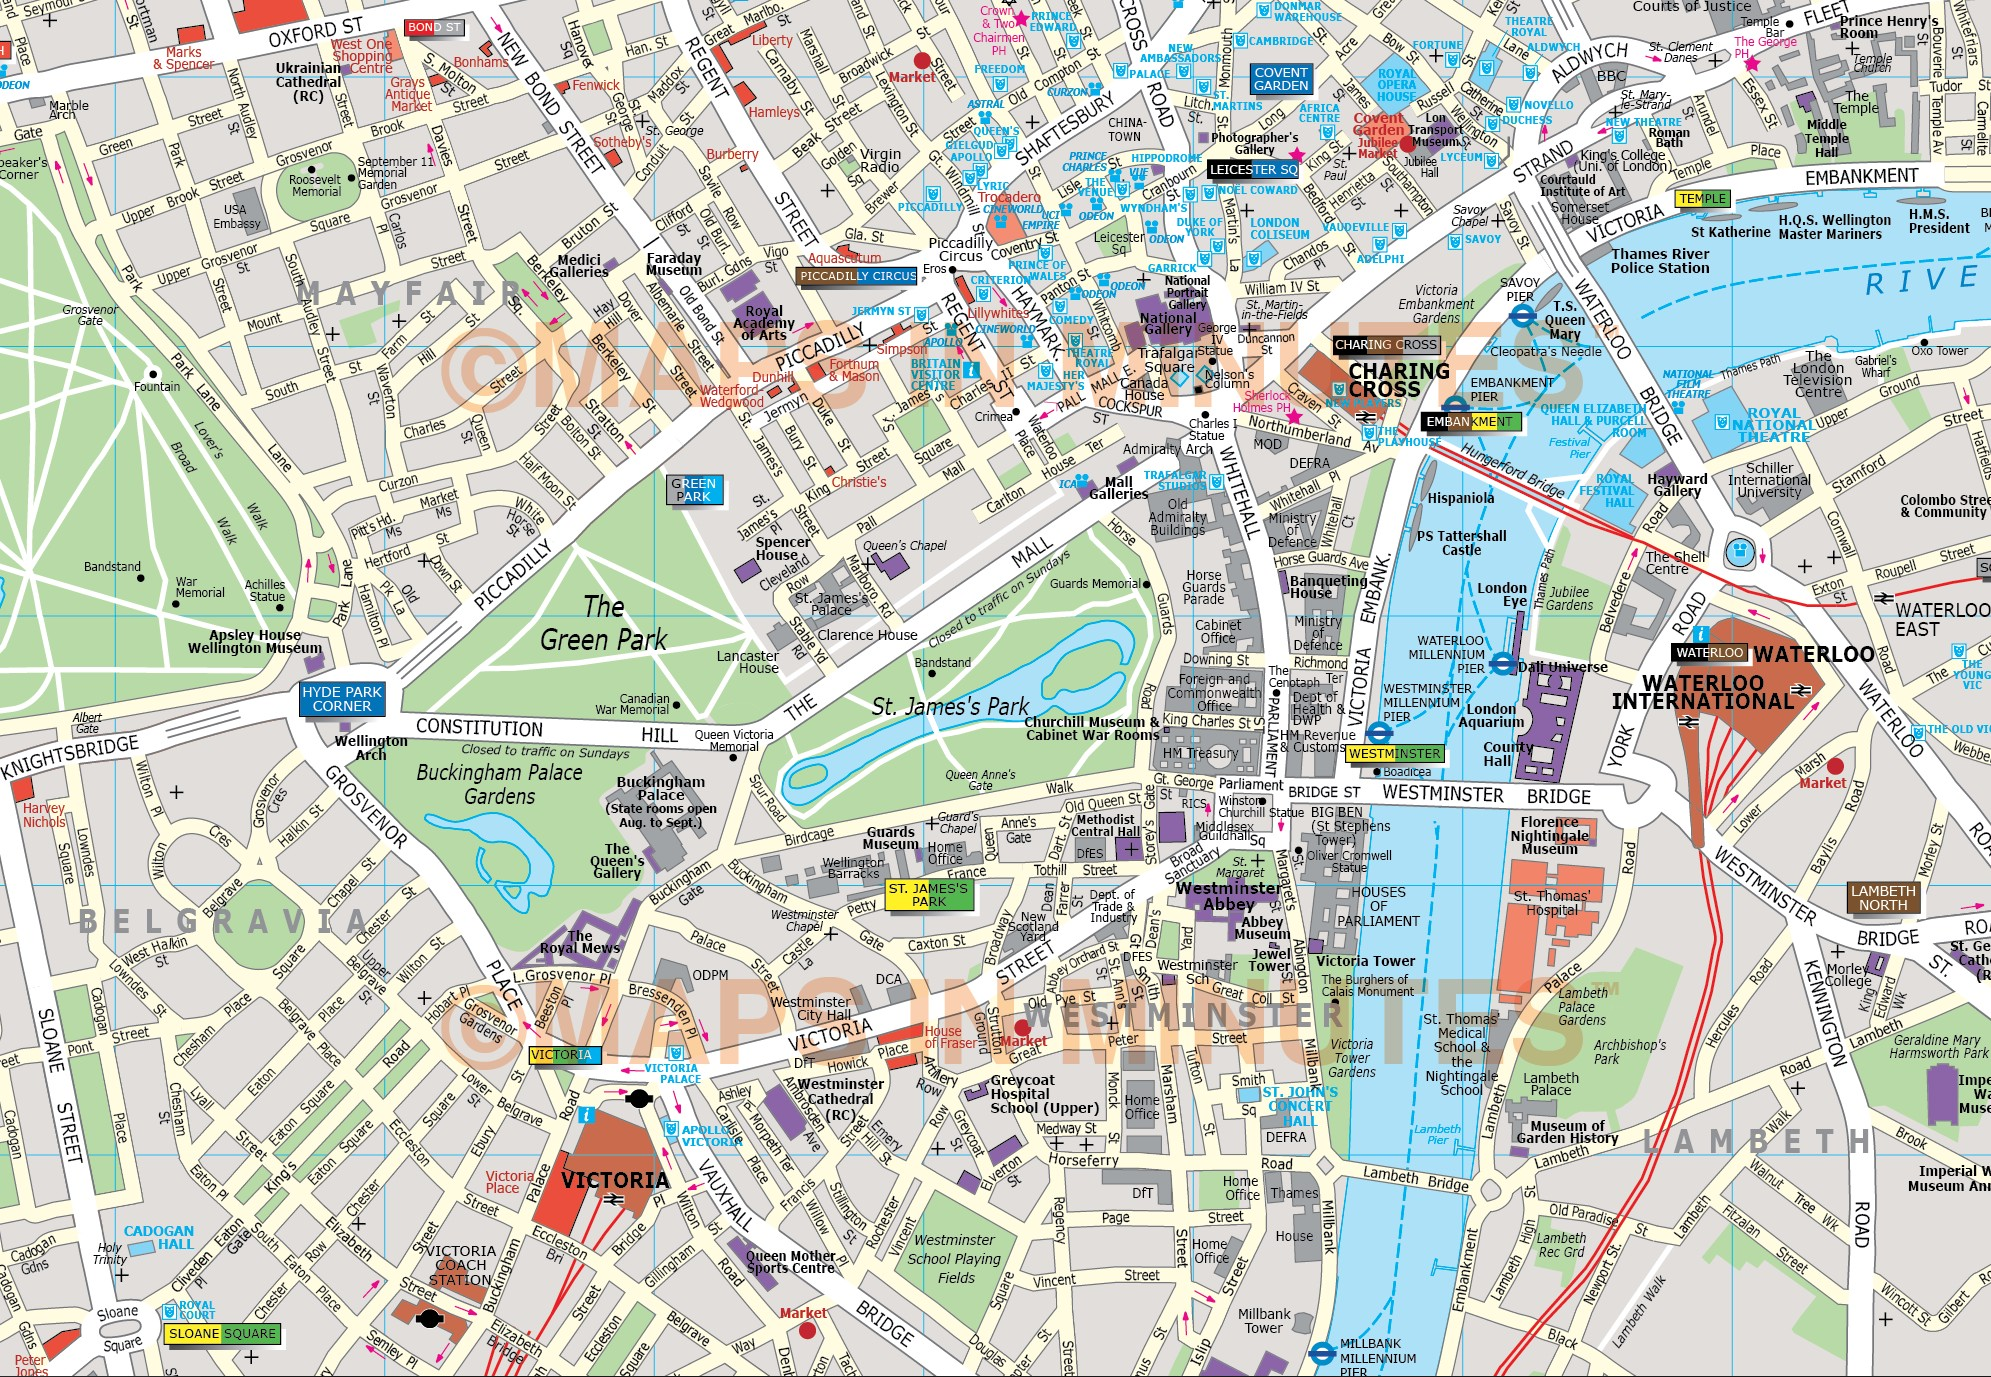 London City Area Map.Deluxe London City Map In Illustrator Editable Vector Format